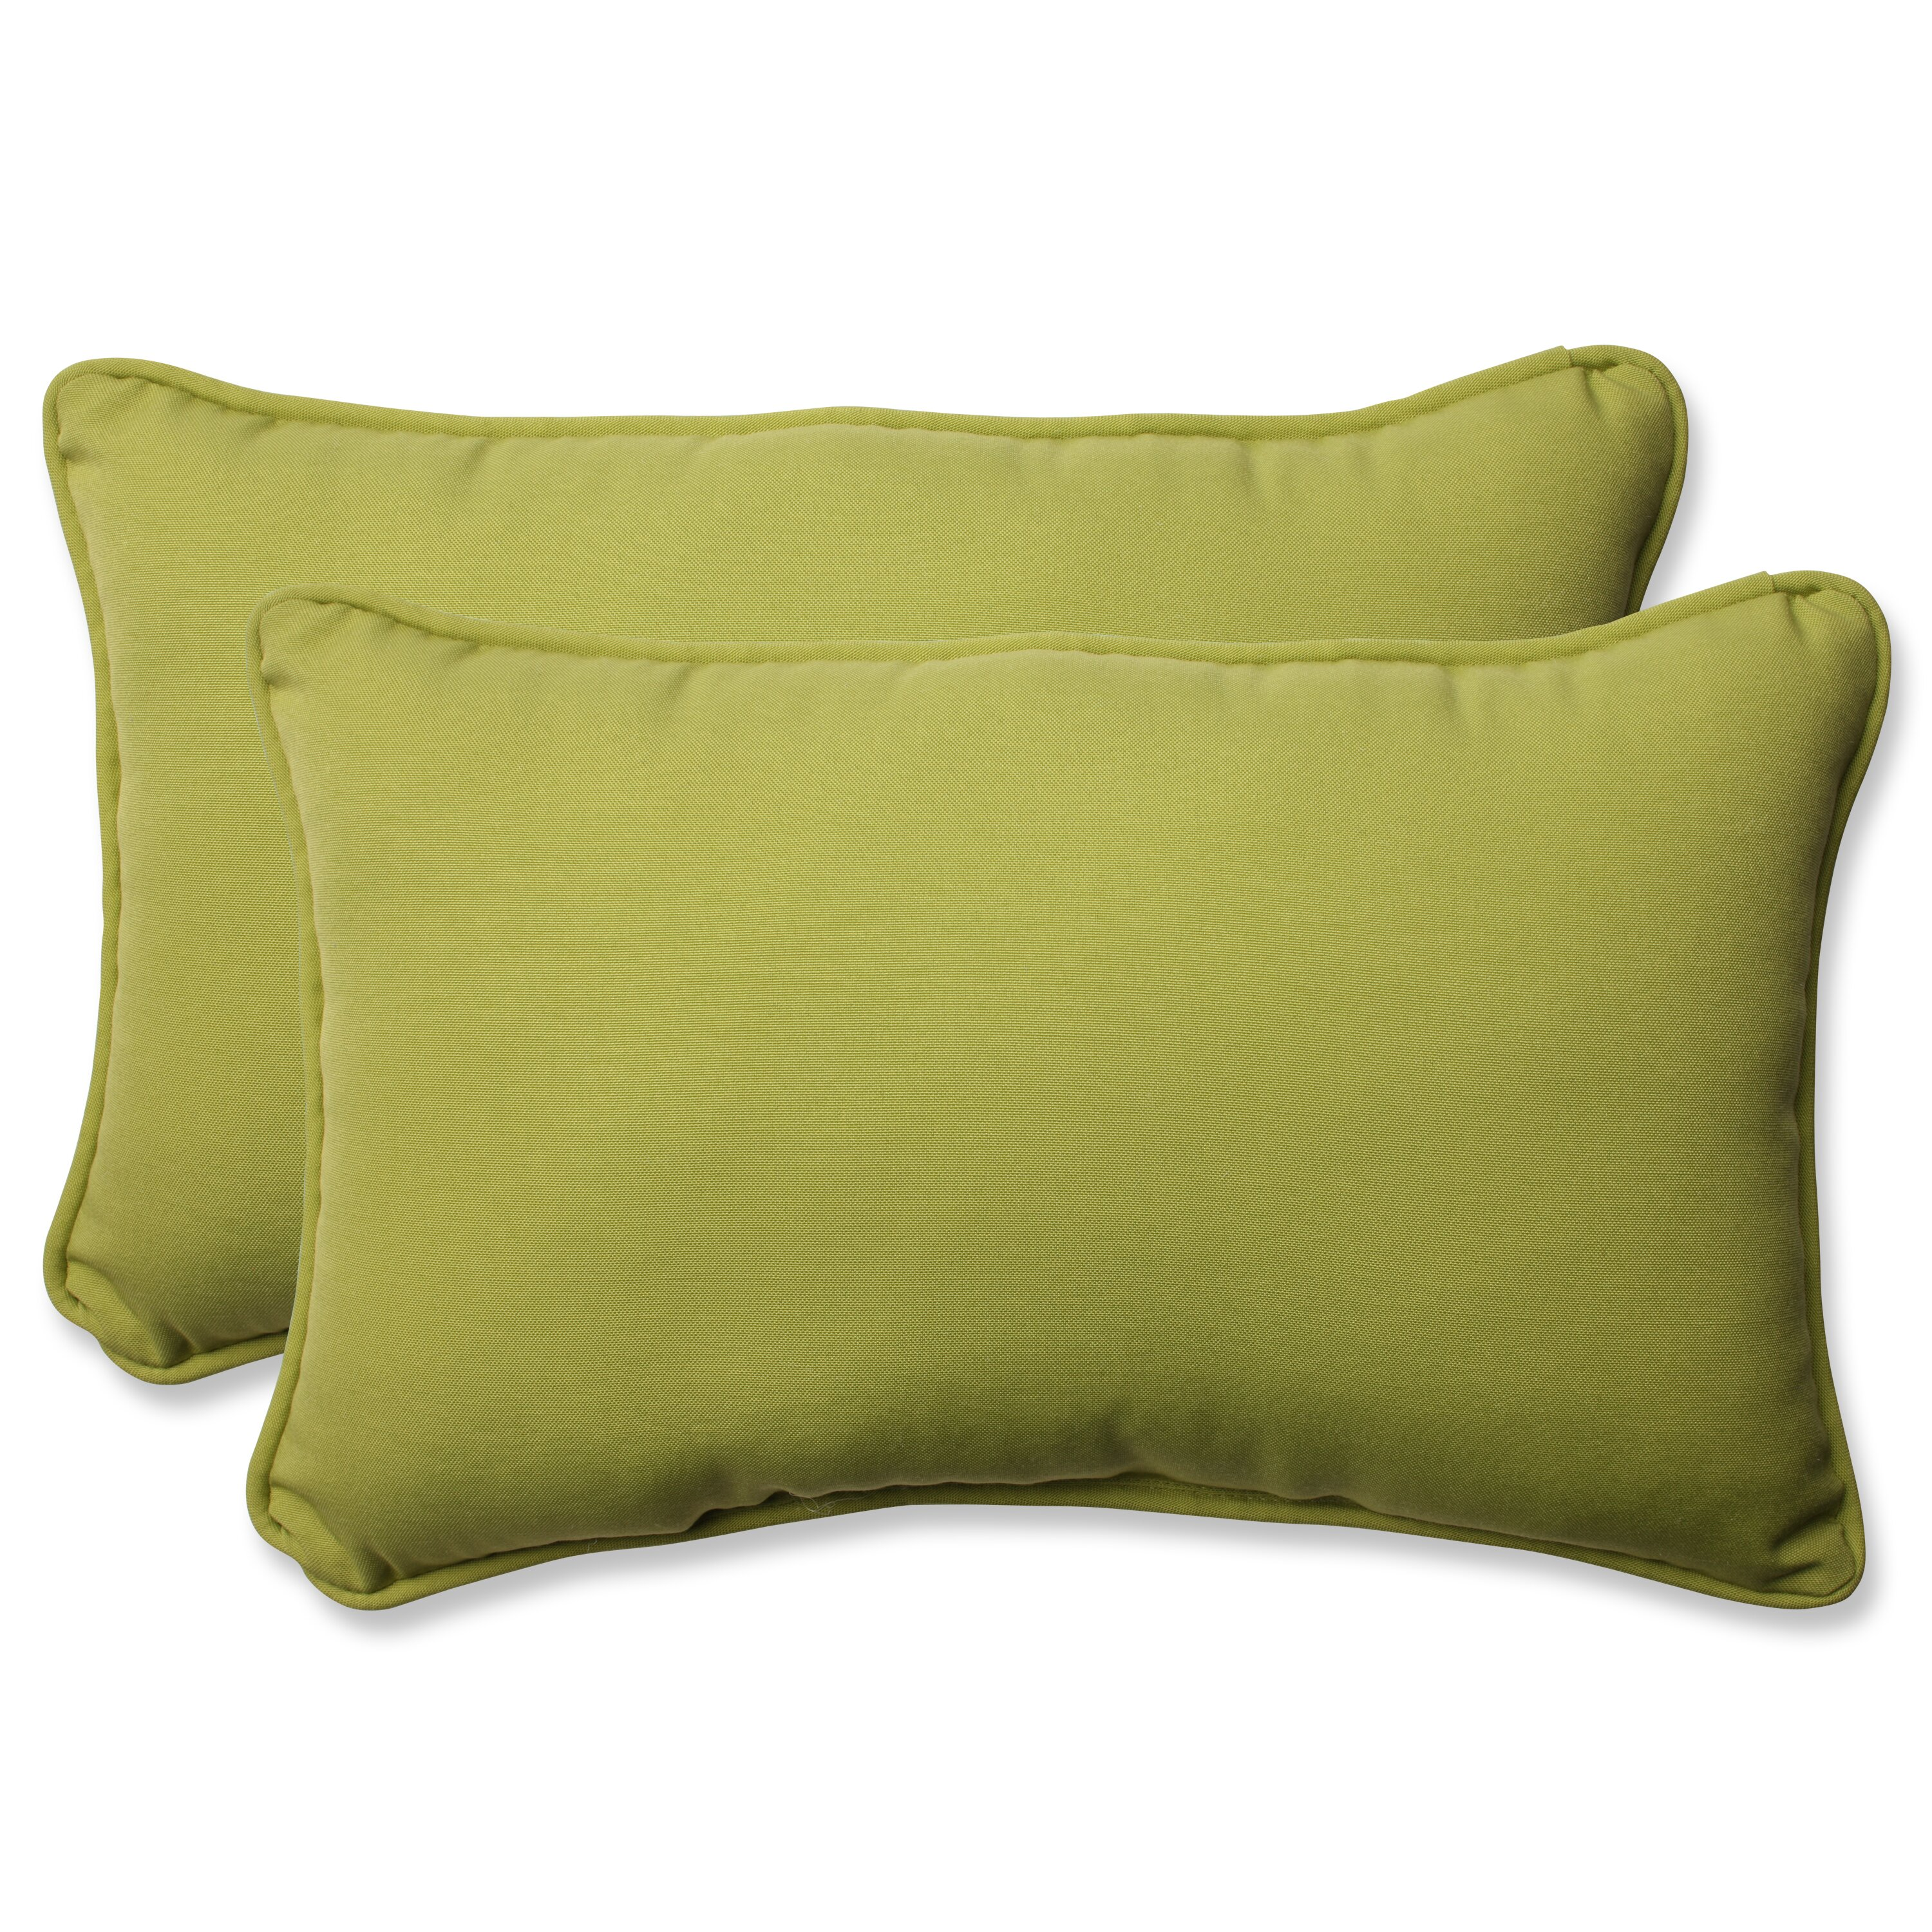 Throw Pillows In Abuja : Pillow Perfect Fresco Pear Indoor/Outdoor Throw Pillow & Reviews Wayfair